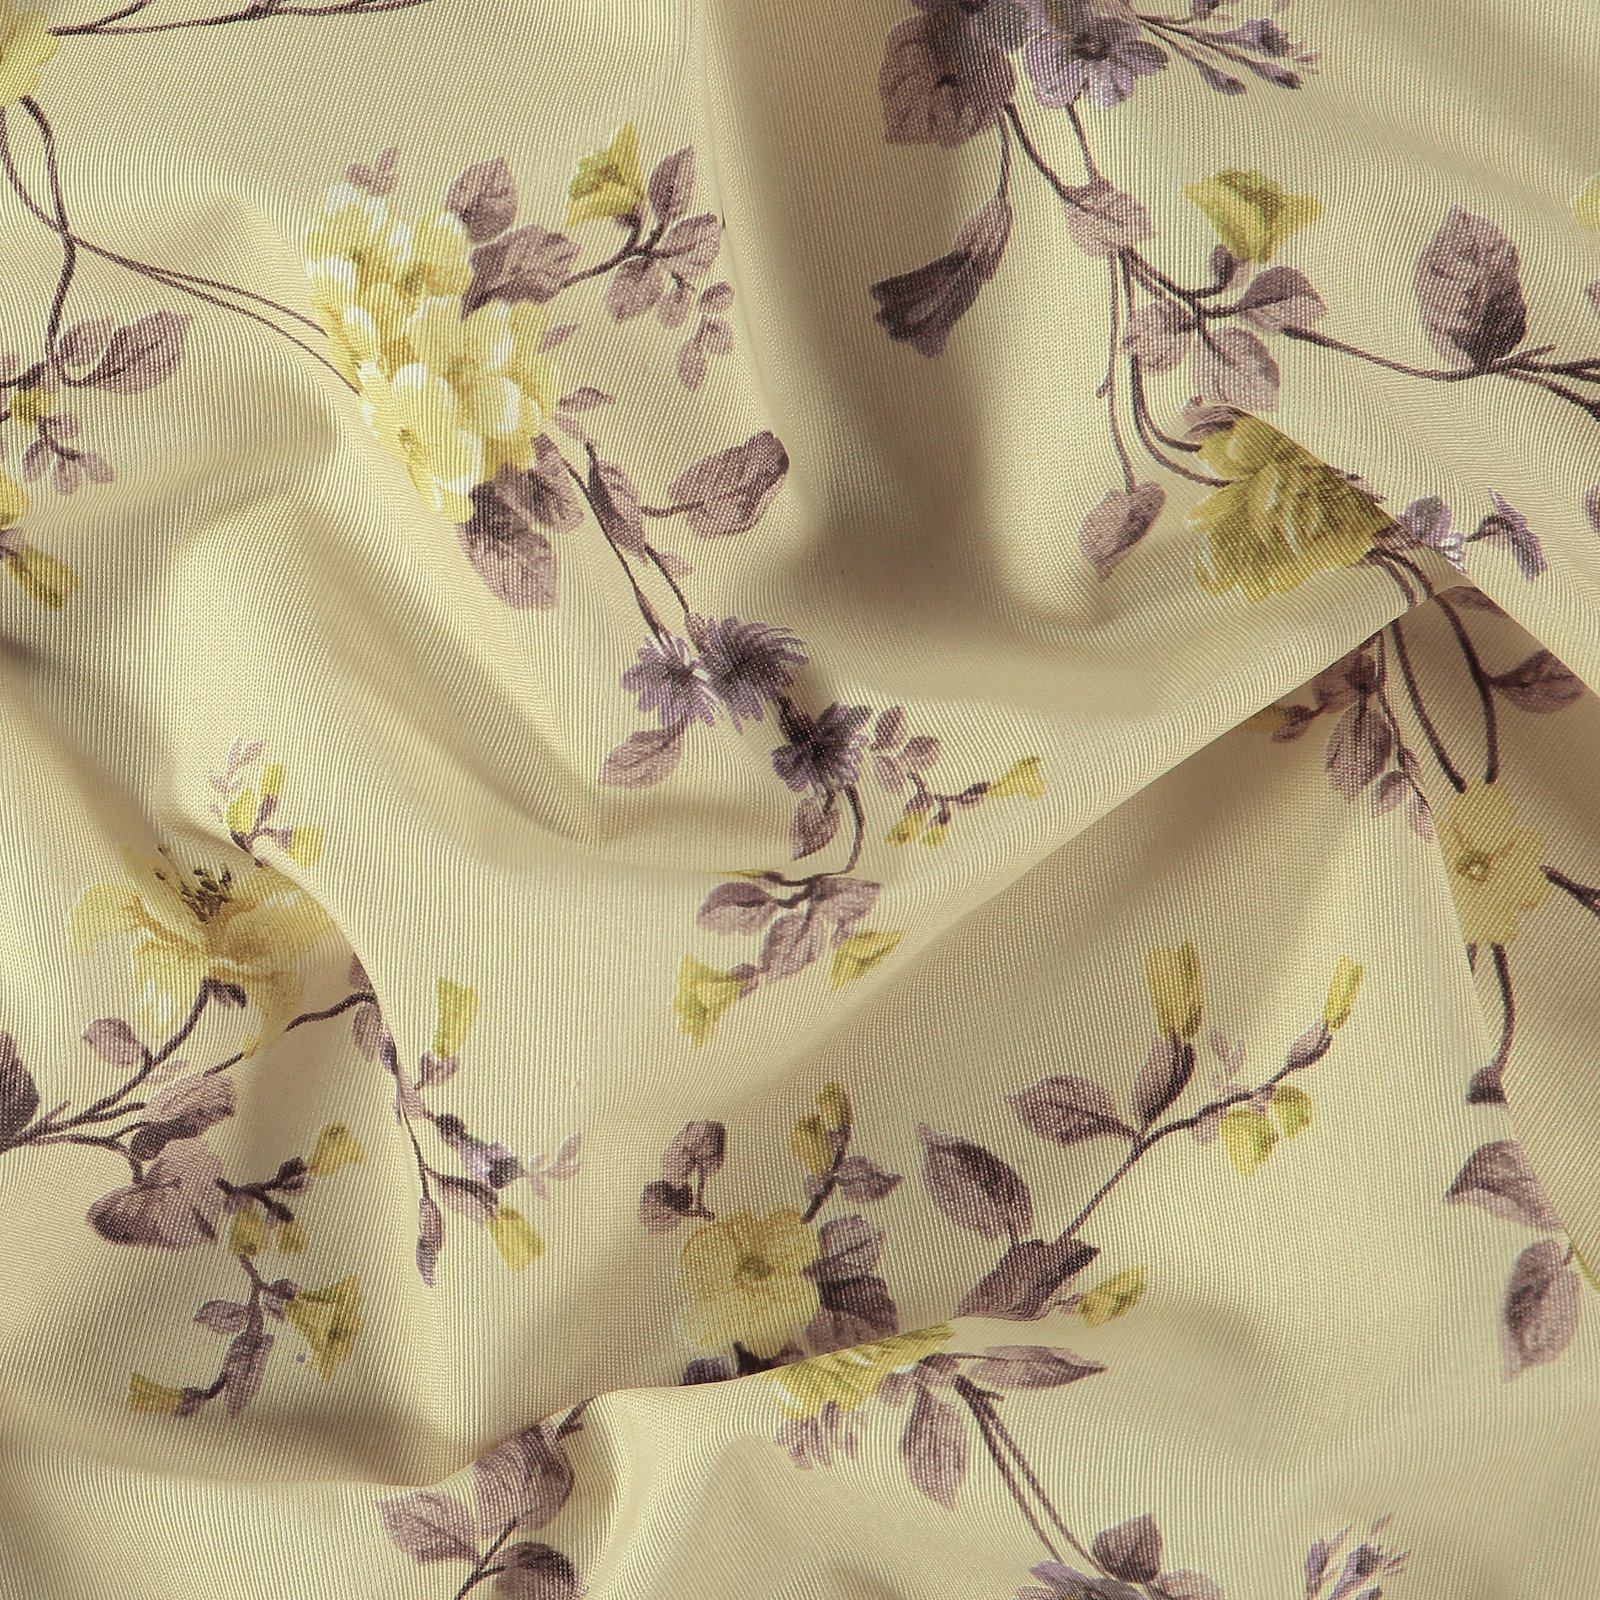 Woven beige with purple/yellow flowers